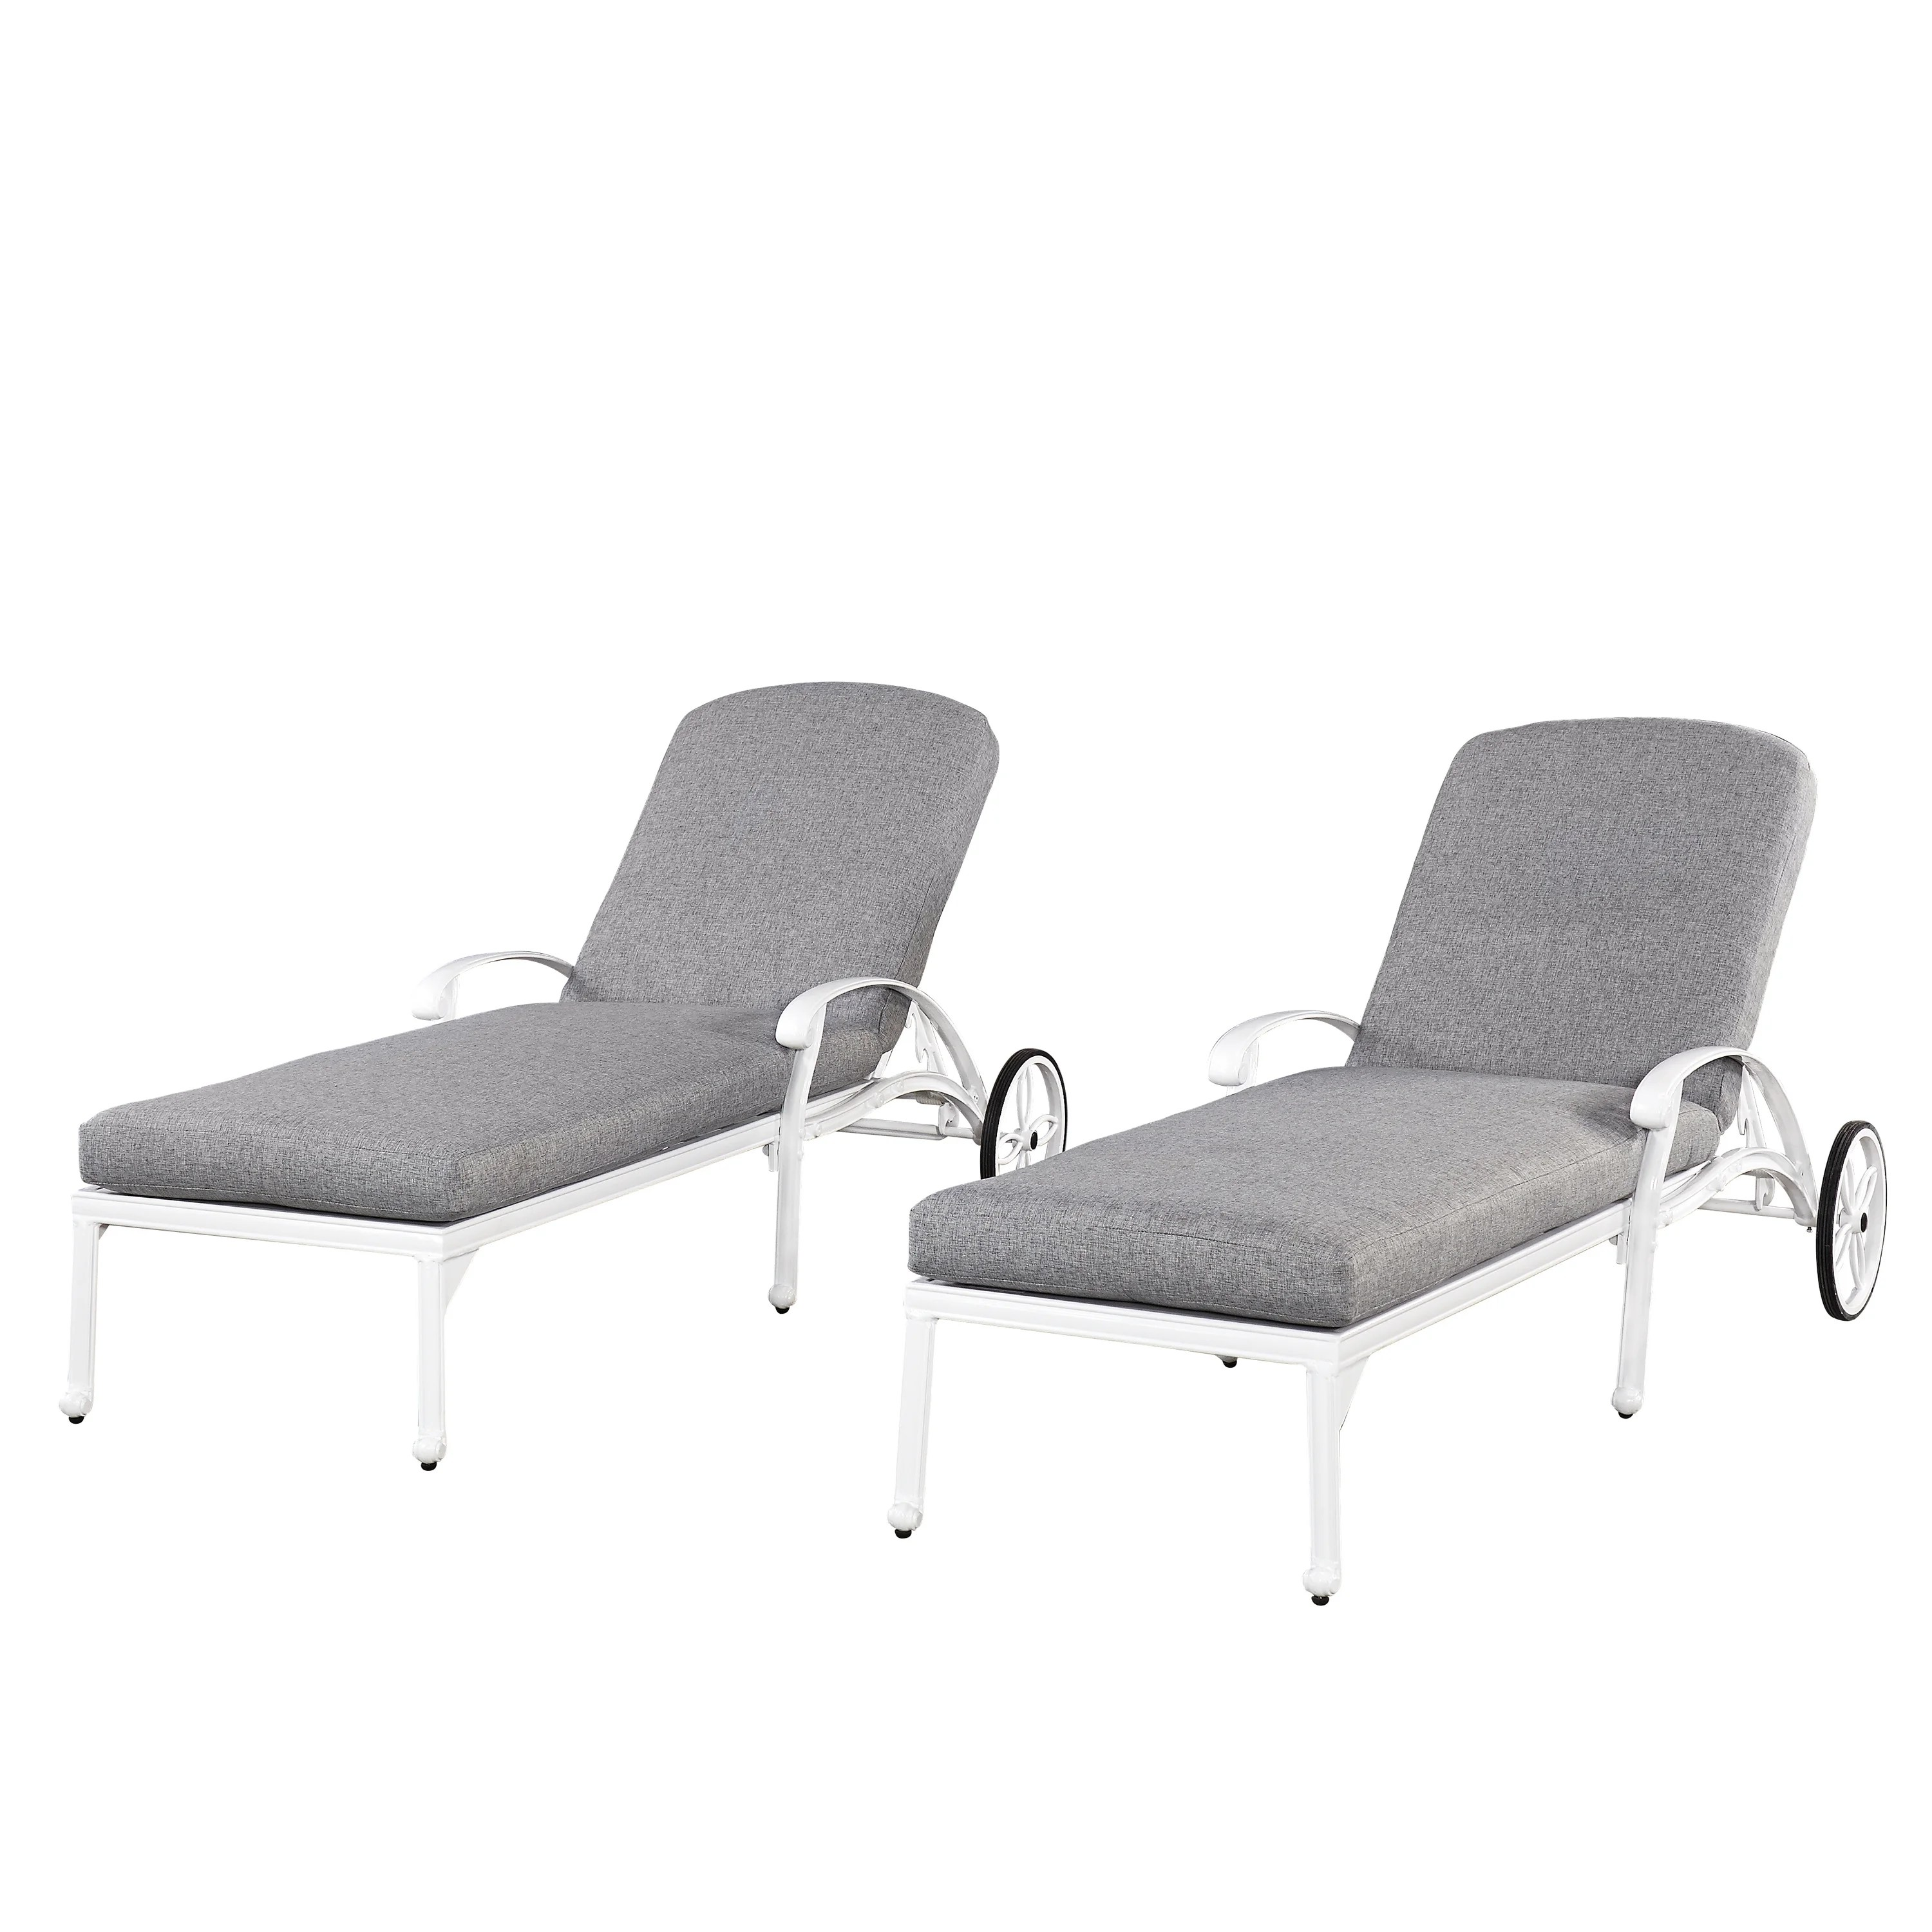 White Outdoor Lounge Chair Home Styles Floral Blossom White Chaise Lounge Chairs W Cushions 2